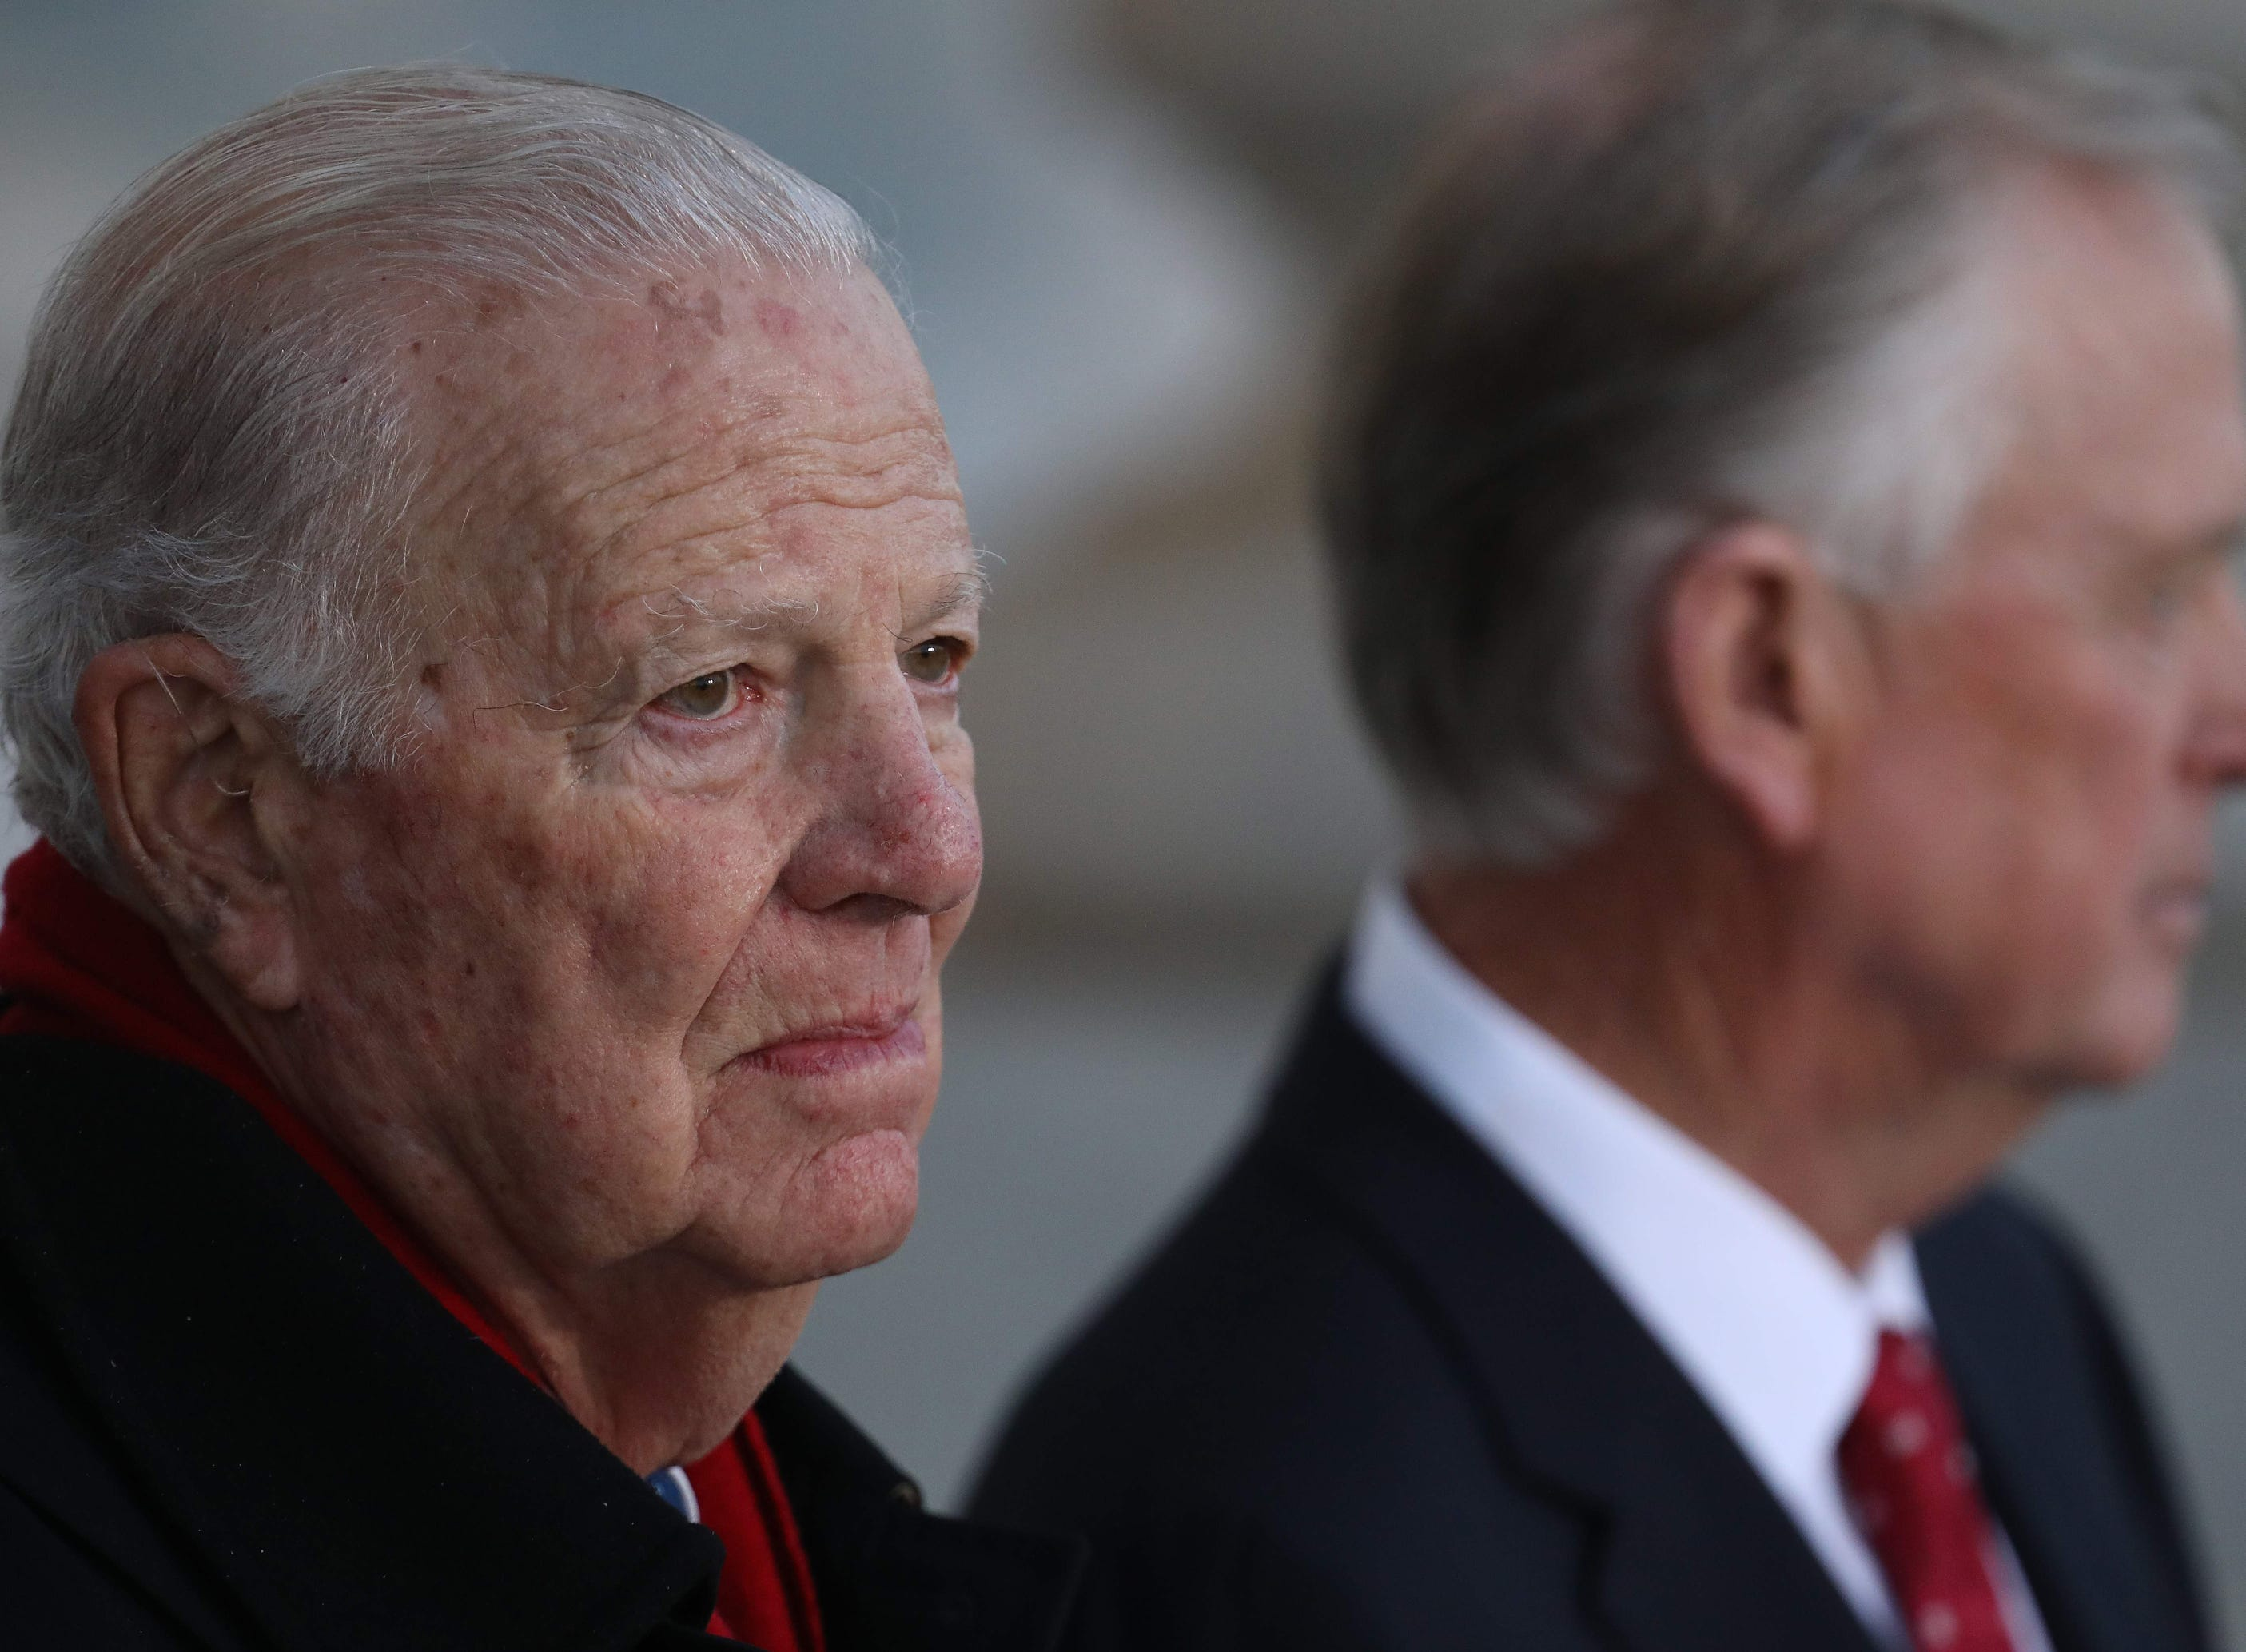 Former Secretary of State James Baker, left,  and former Vice President Dan Quayle await the arrival of the procession carrying the casket of former President George H. W. Bush.  Baker and Bush were close personal friends.